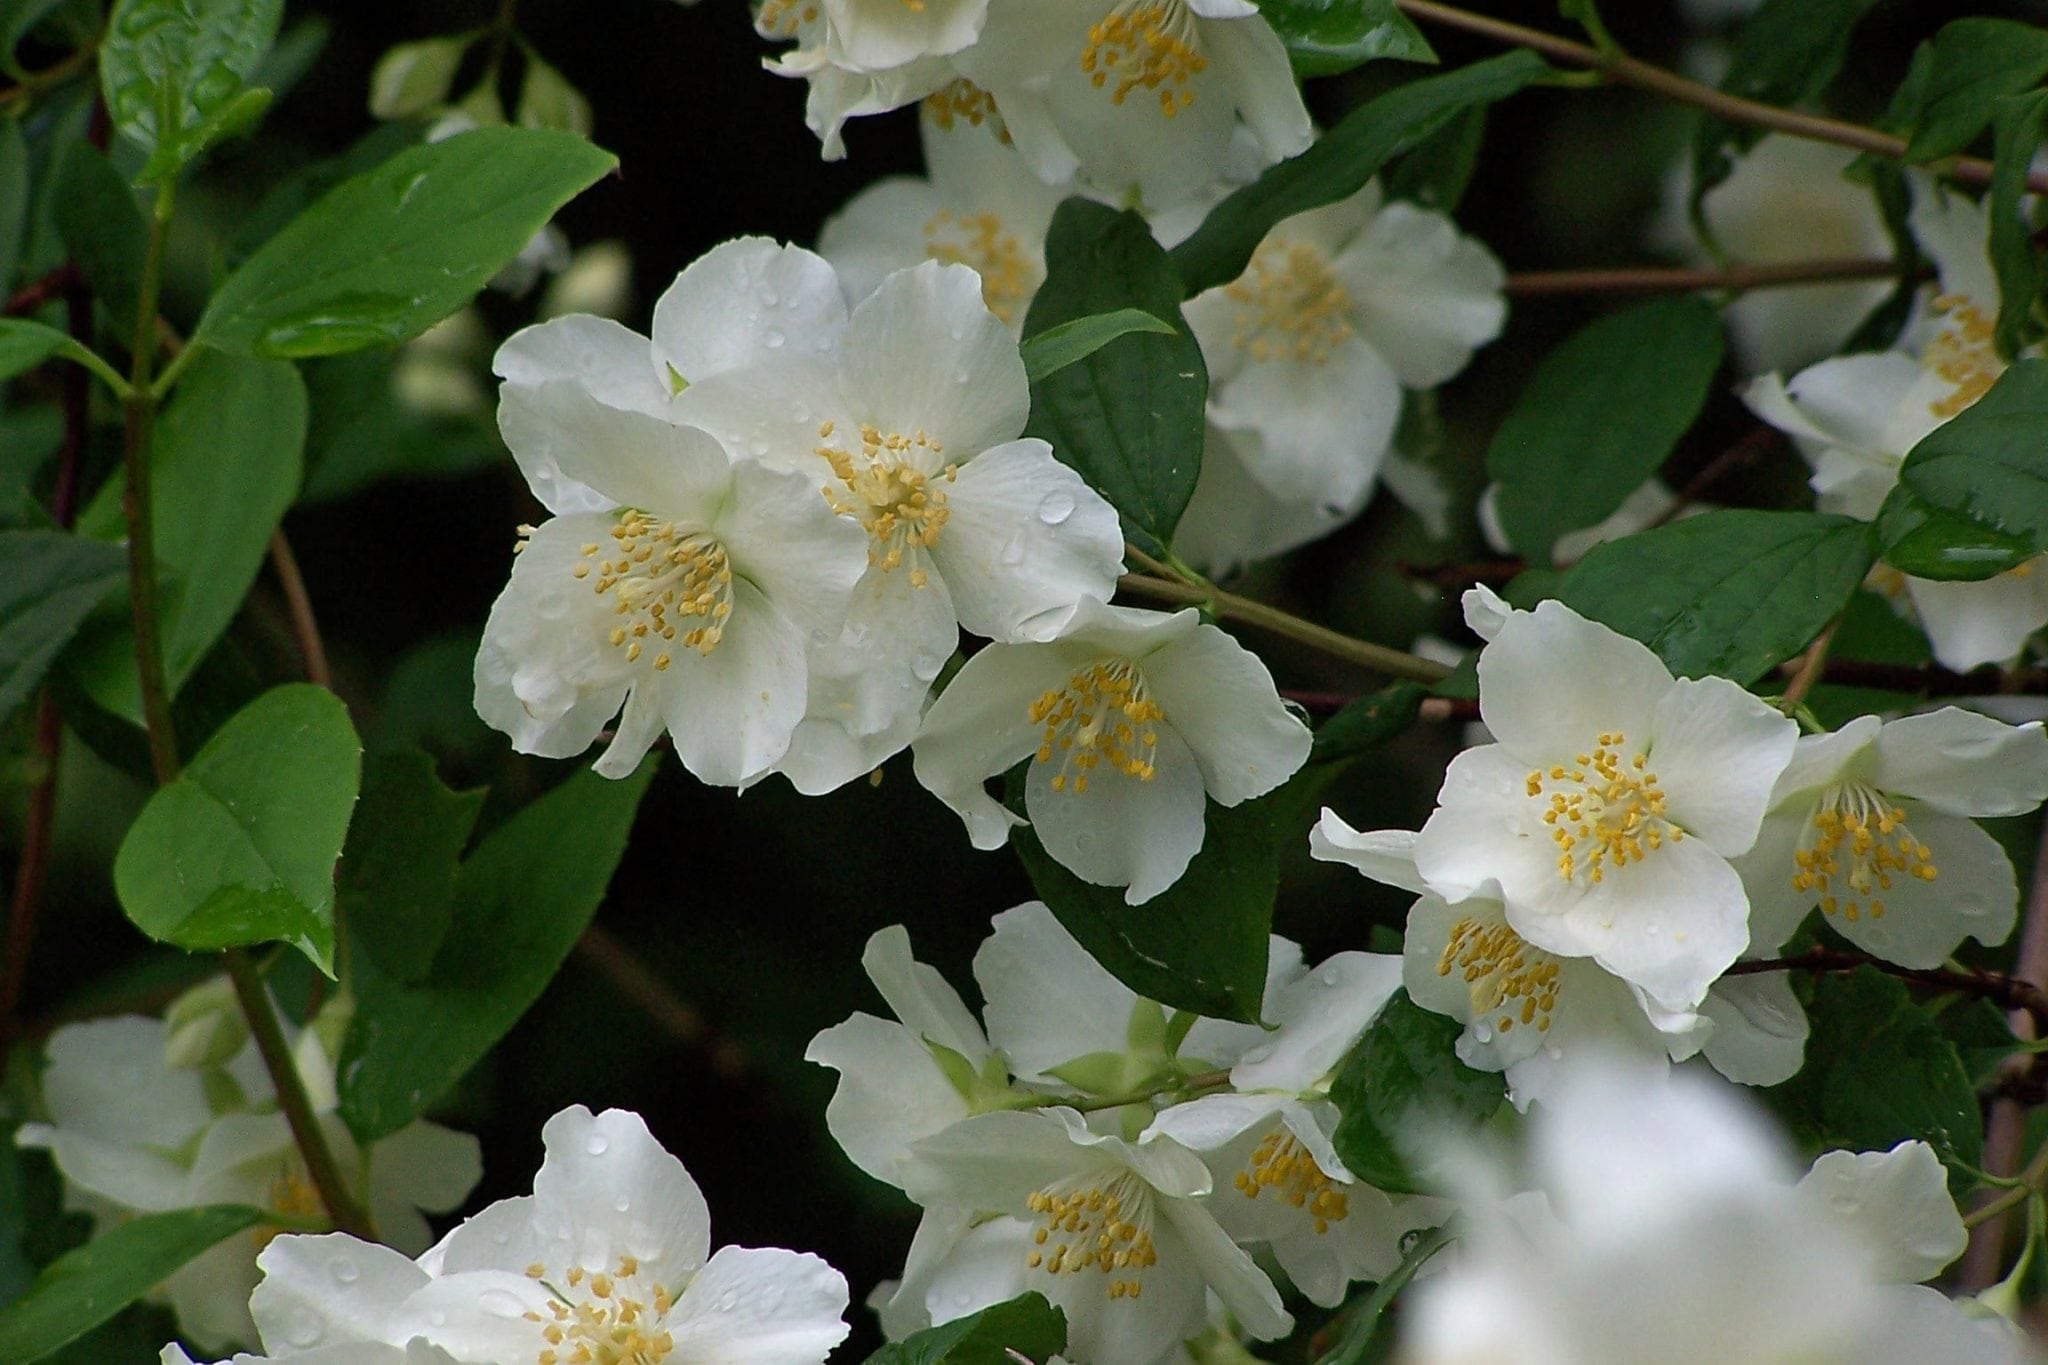 Dewy white flowers perfume spring air and adorn green foliage.